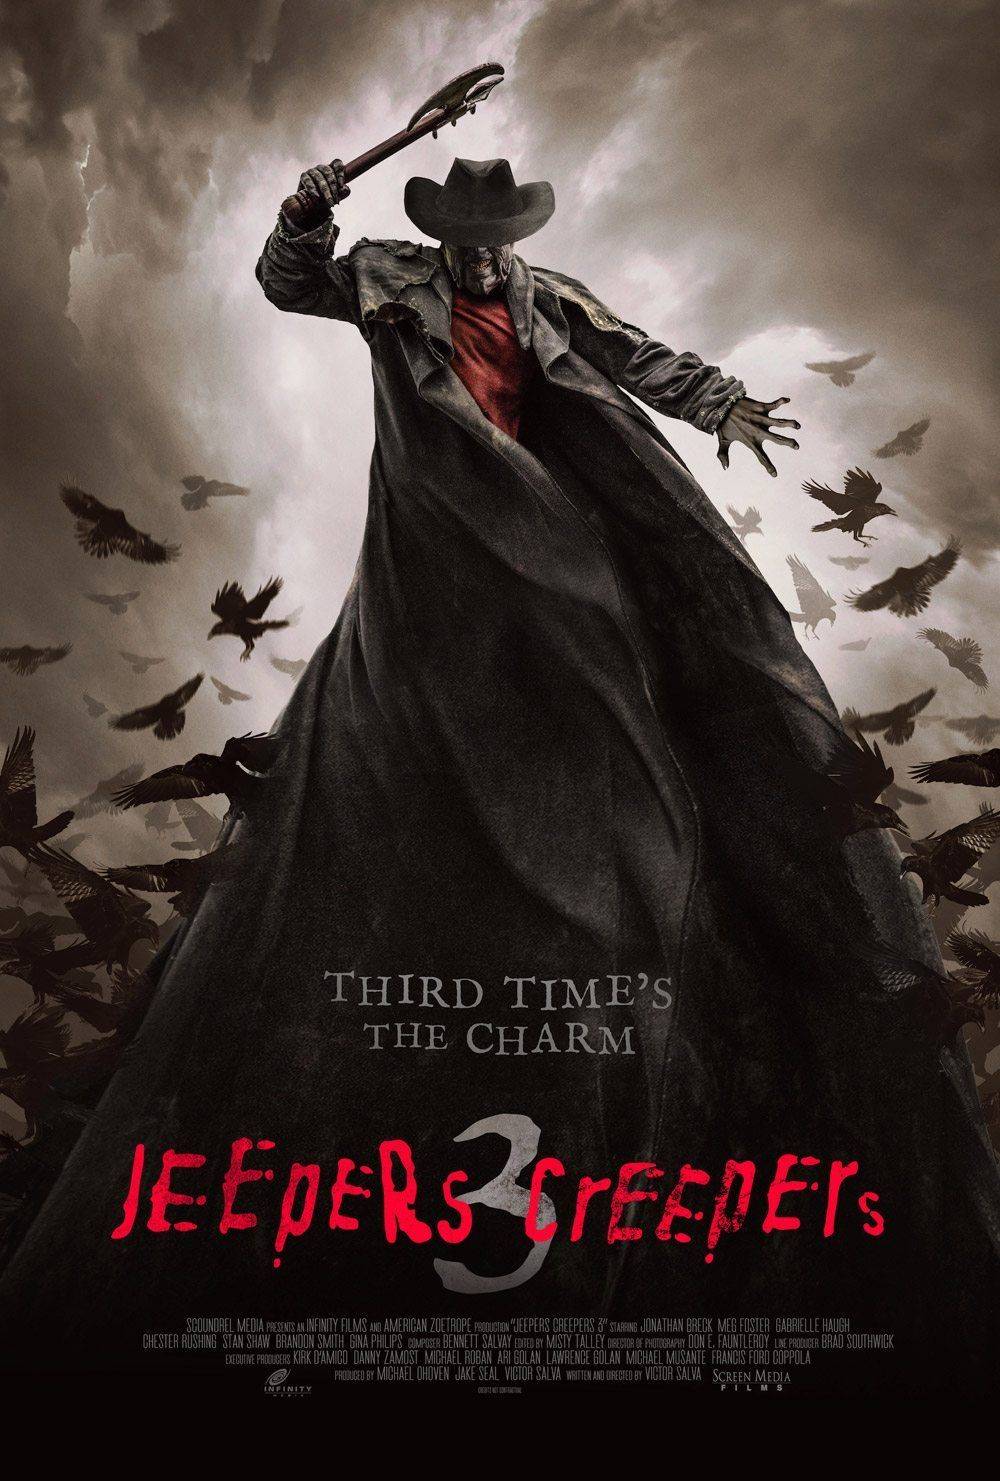 Jeepers Creepers 3 Hits Syfy On October 28th Jeepers Creepers 3 Jeepers Creepers Jeepers